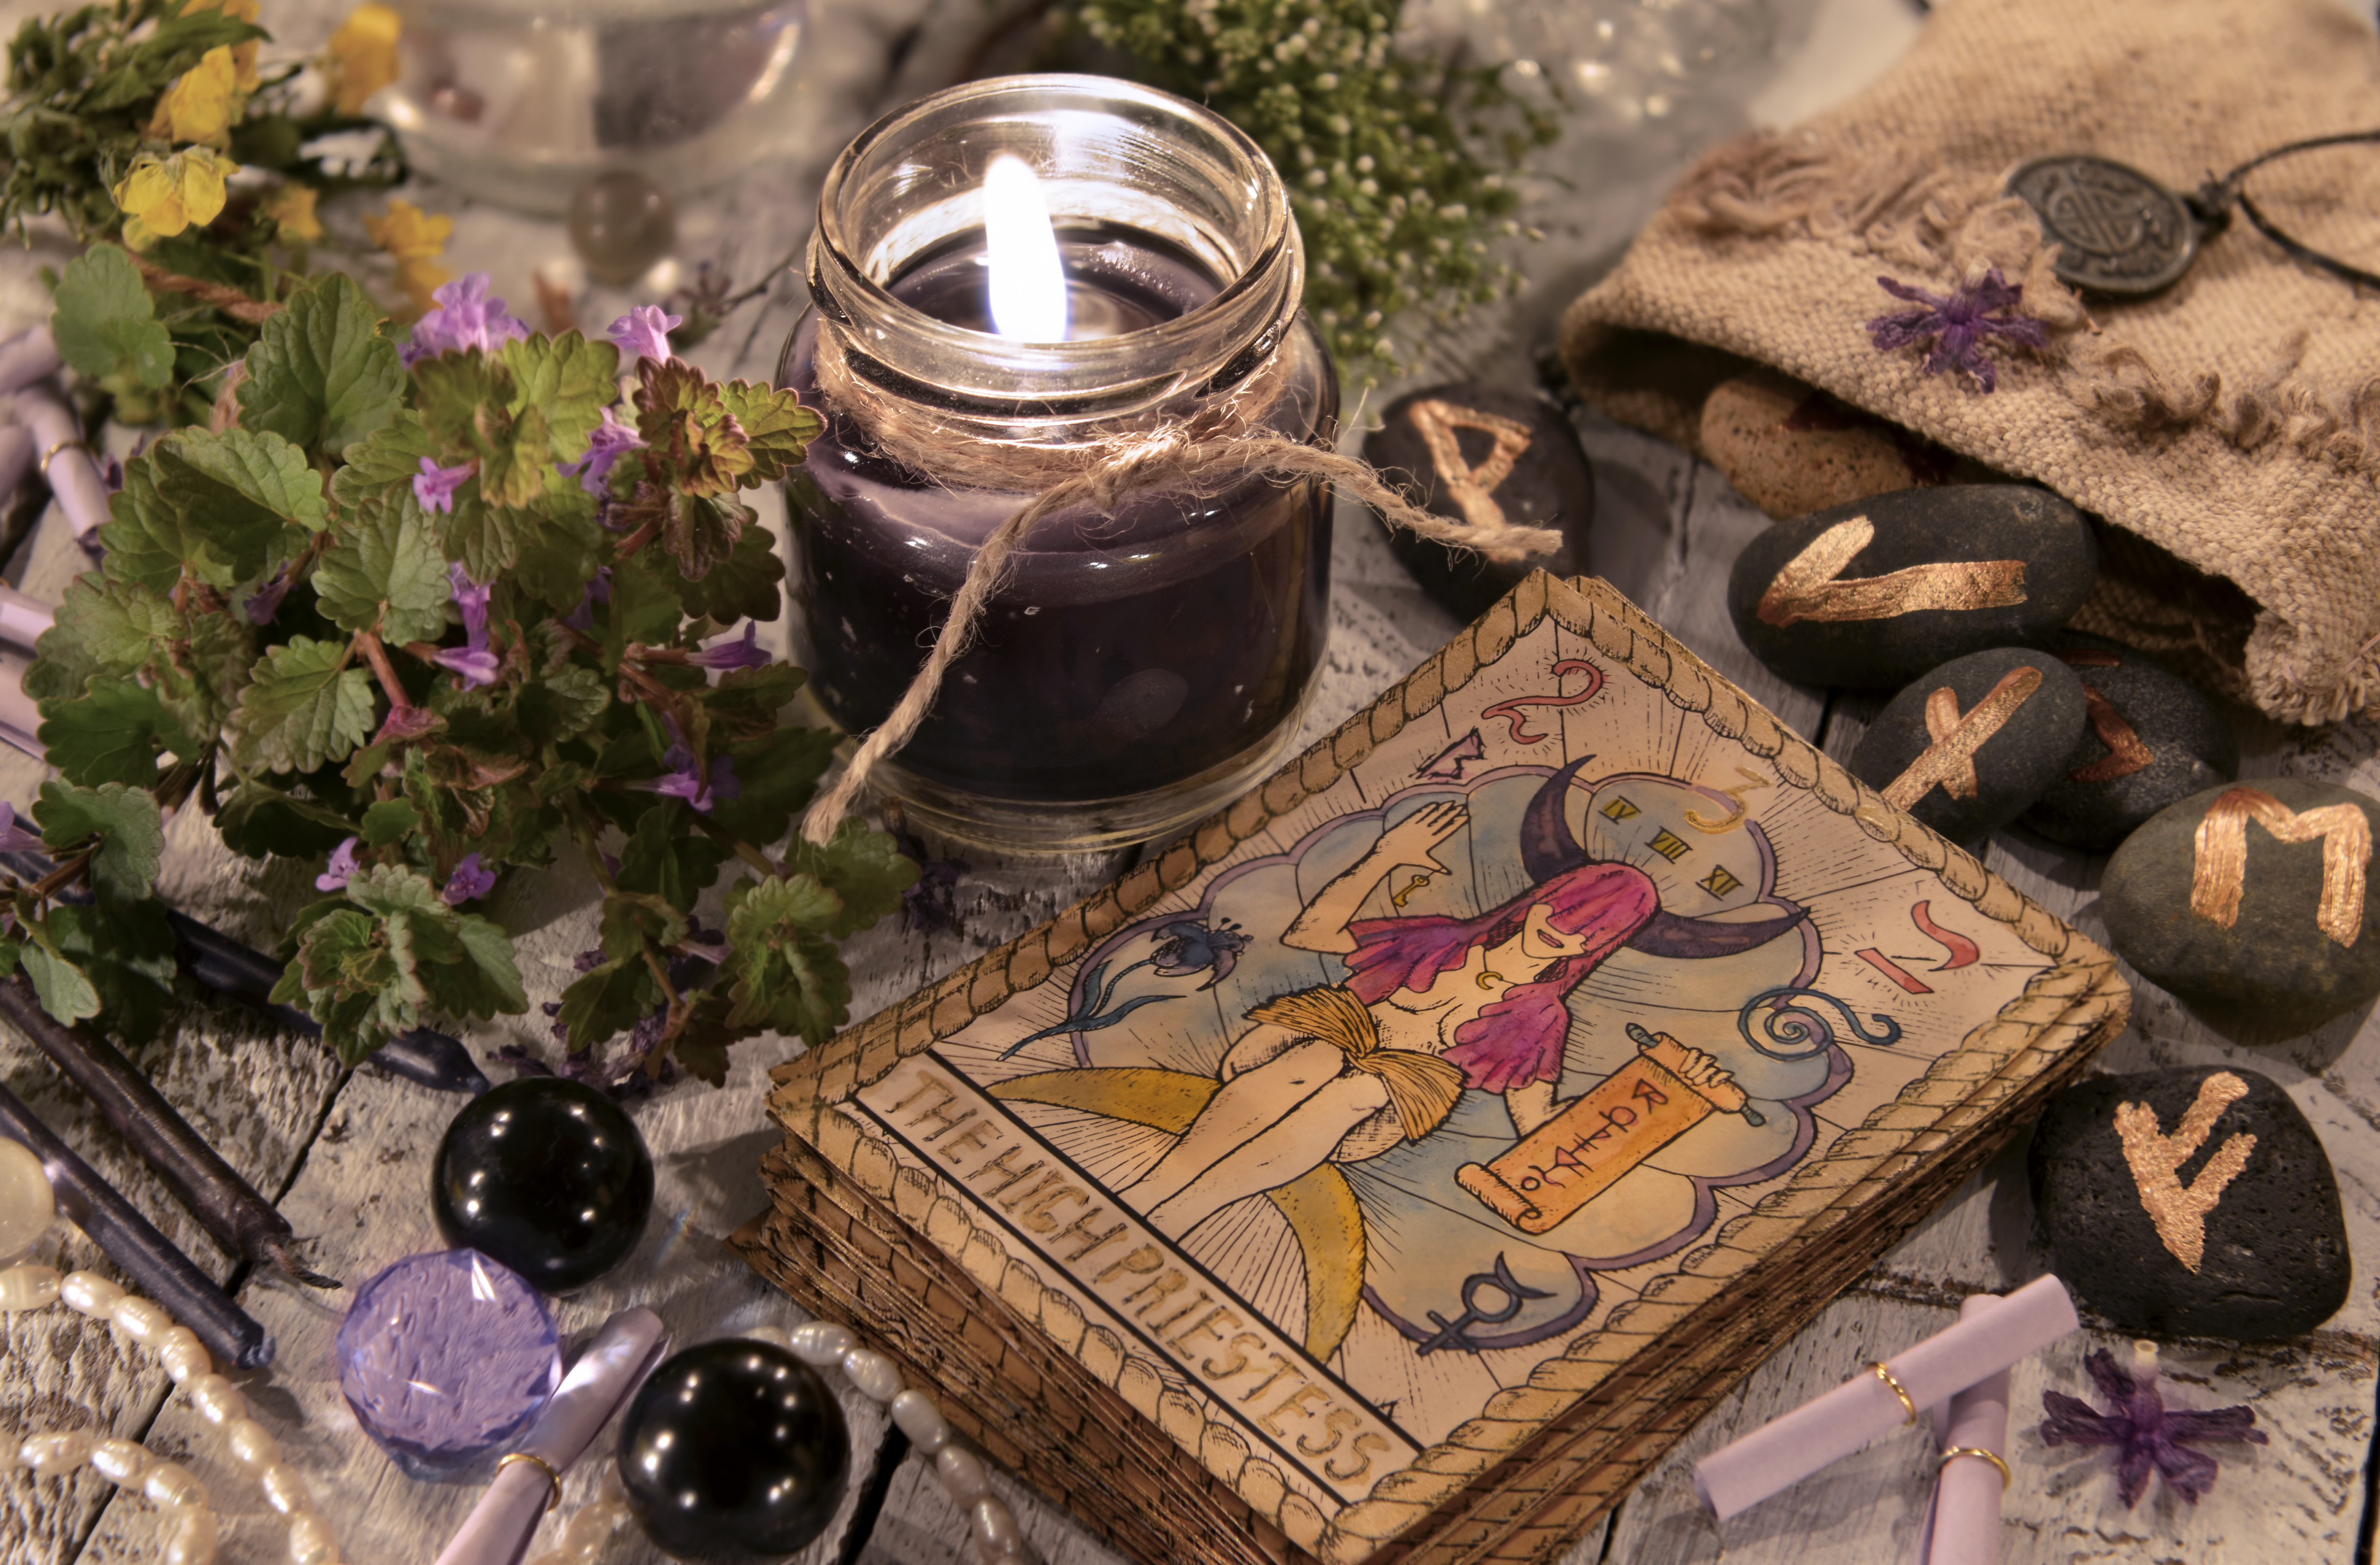 Combined Astrology + Tarot Reading